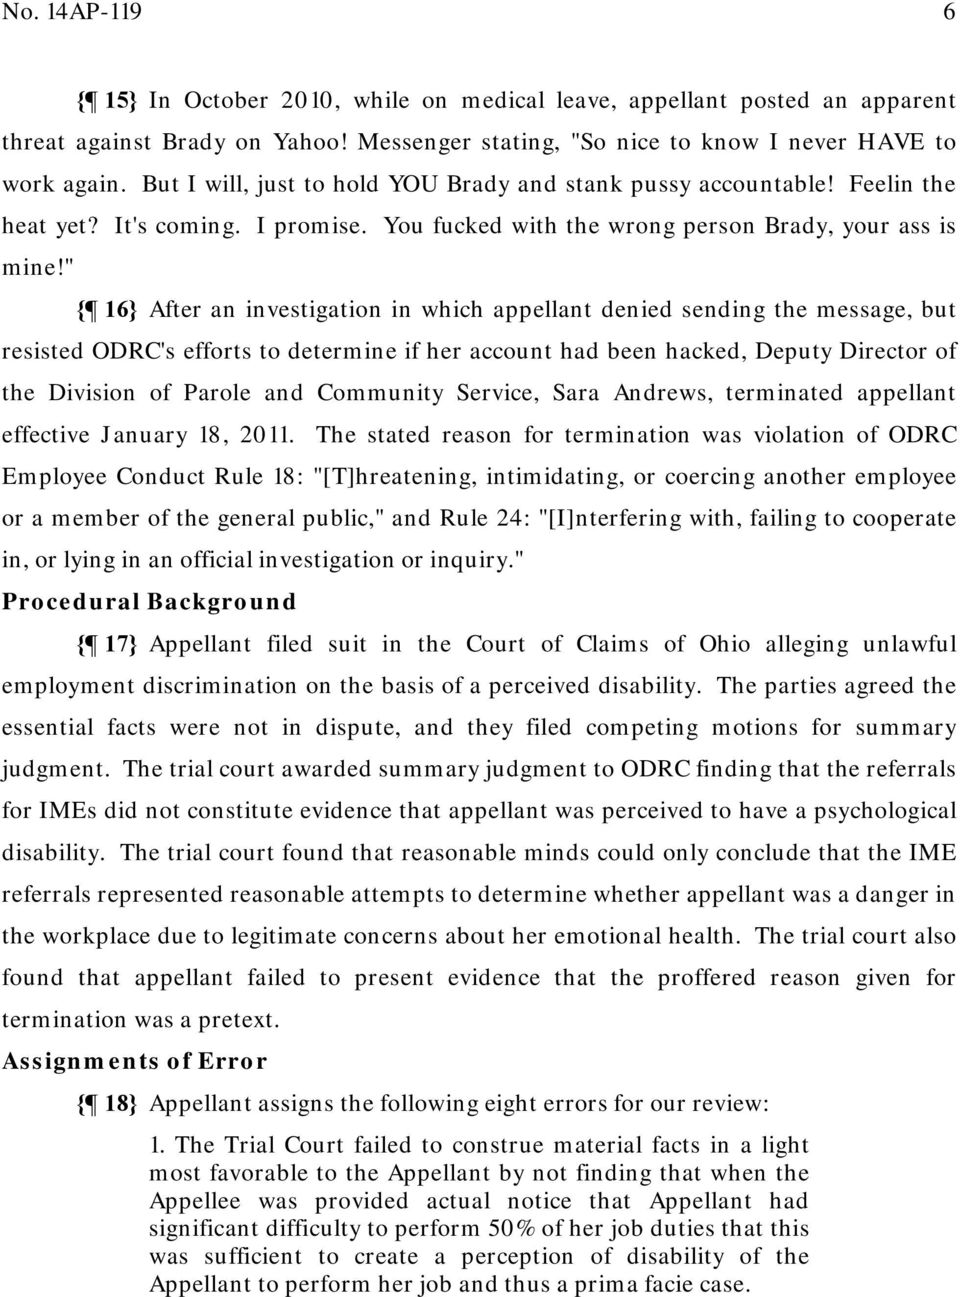 """ { 16} After an investigation in which appellant denied sending the message, but resisted ODRC's efforts to determine if her account had been hacked, Deputy Director of the Division of Parole and"